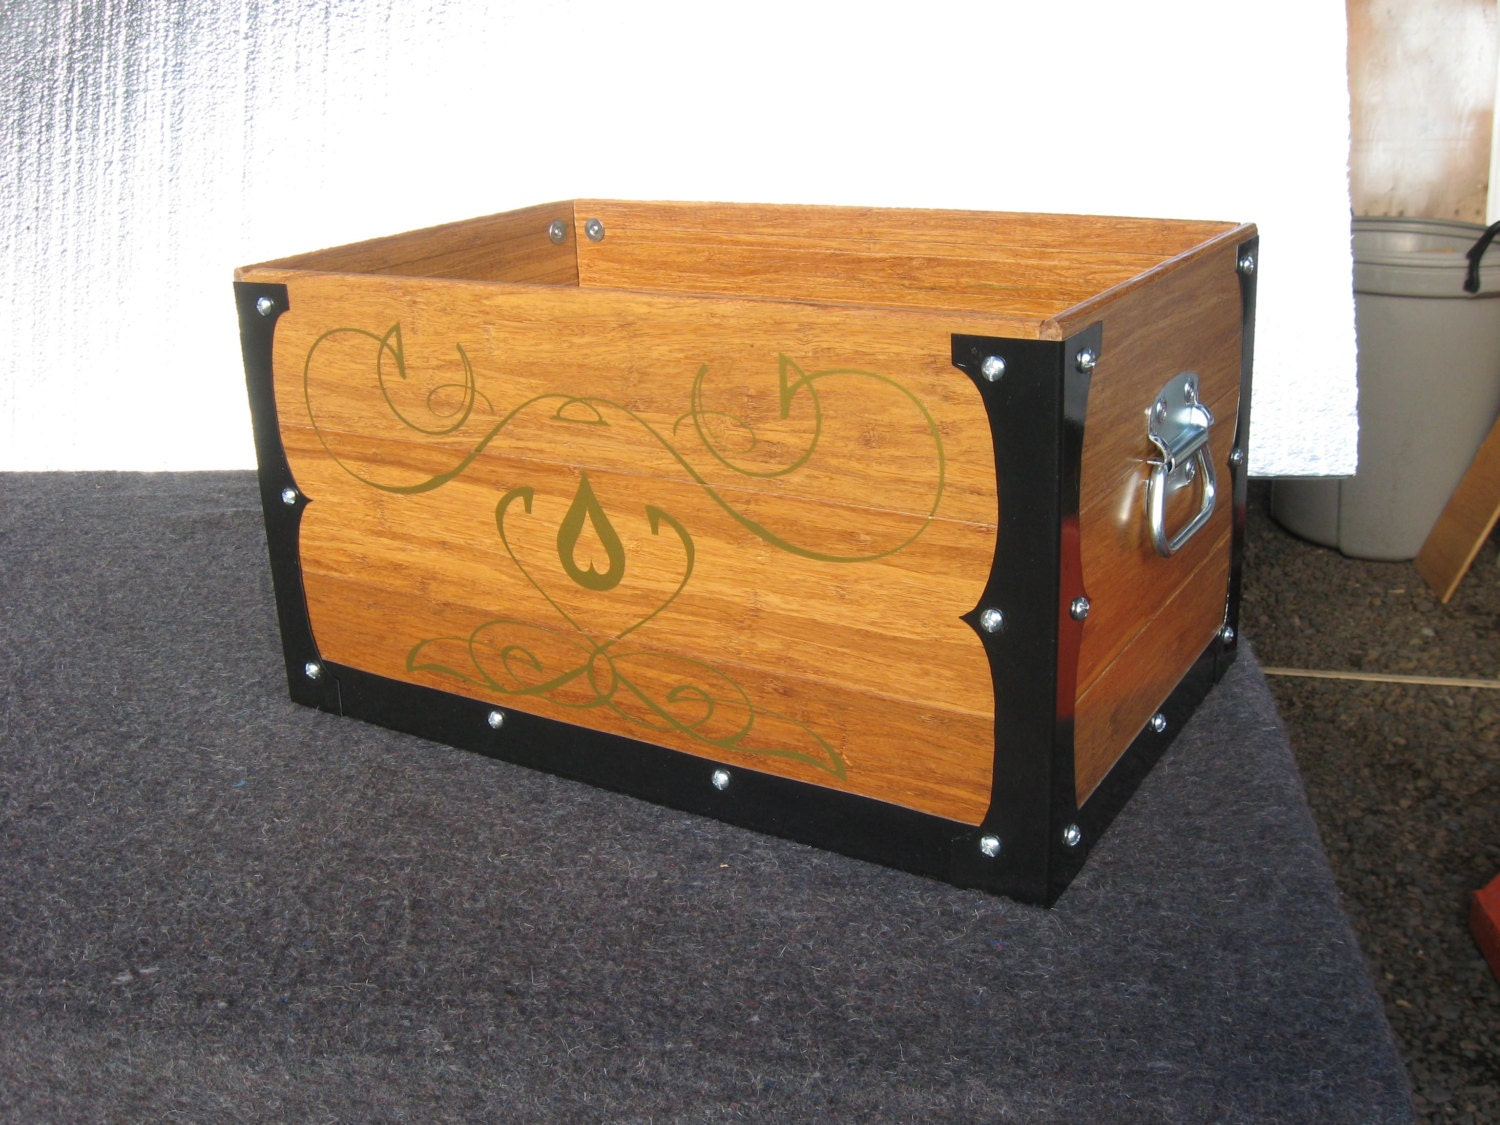 Decorative Kindling Box : Decorative wooden tool crate hearth kindling box by